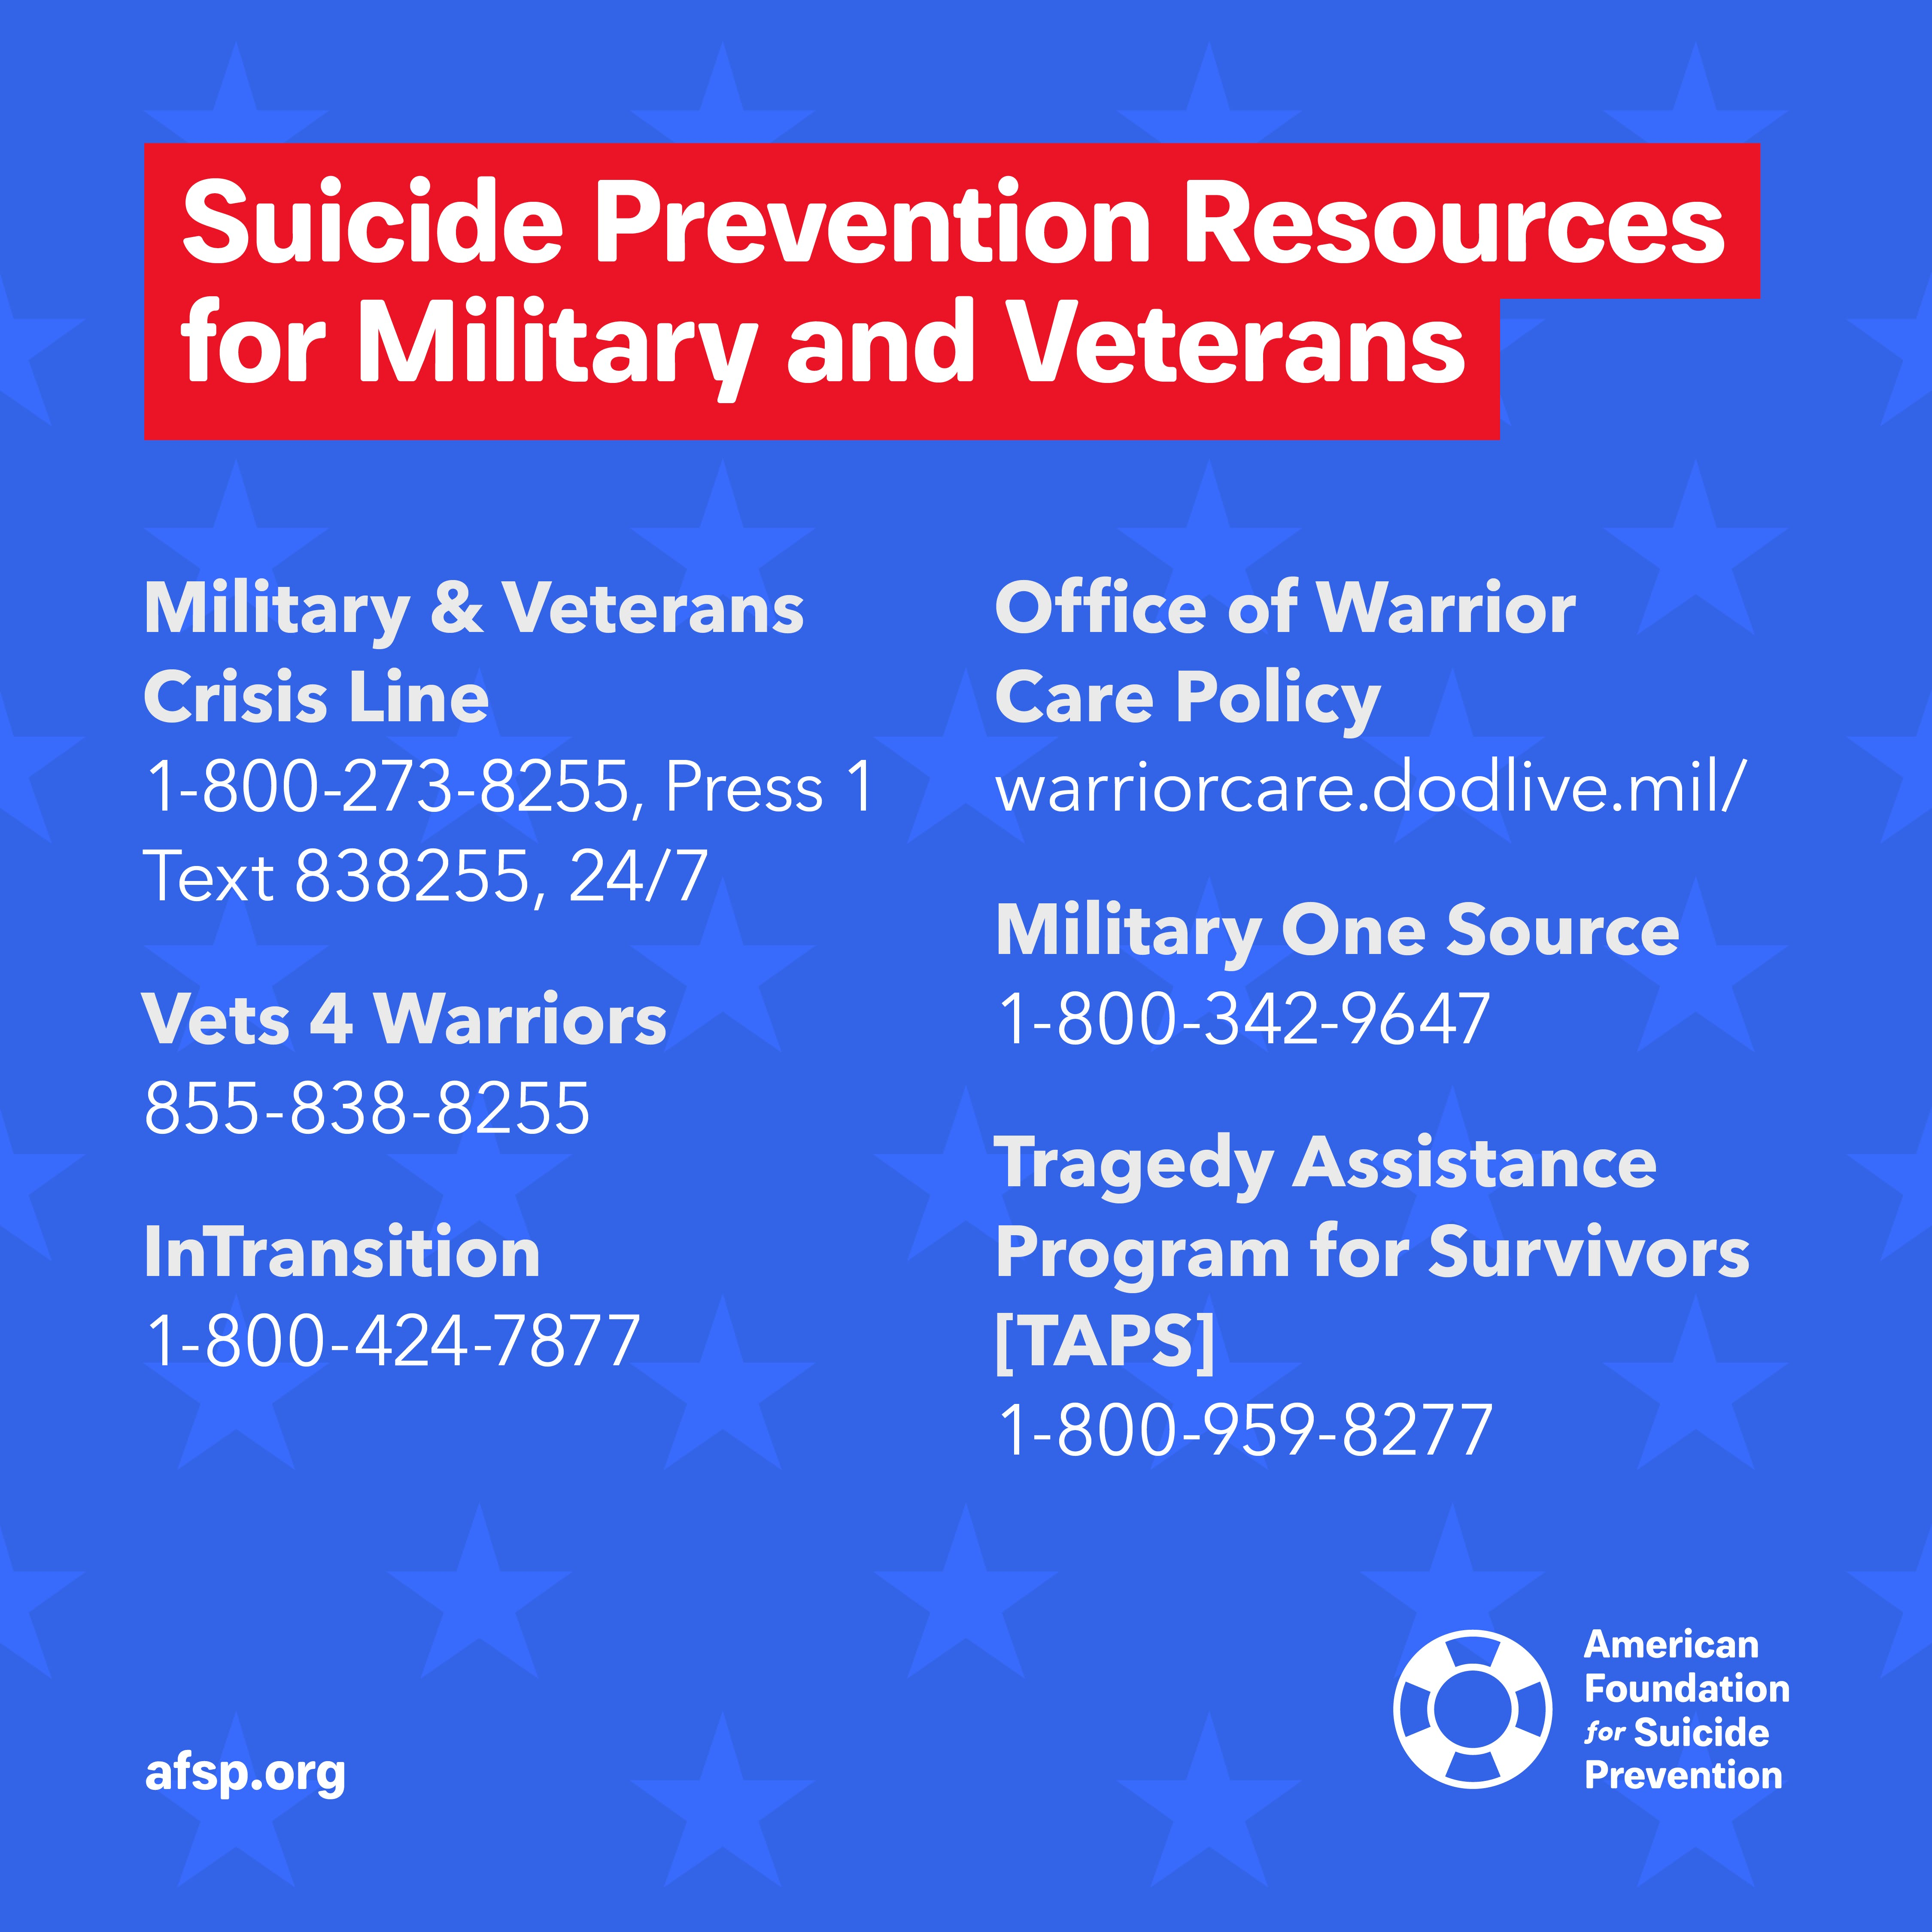 Suicide Prevention Resources for Military and Veterans